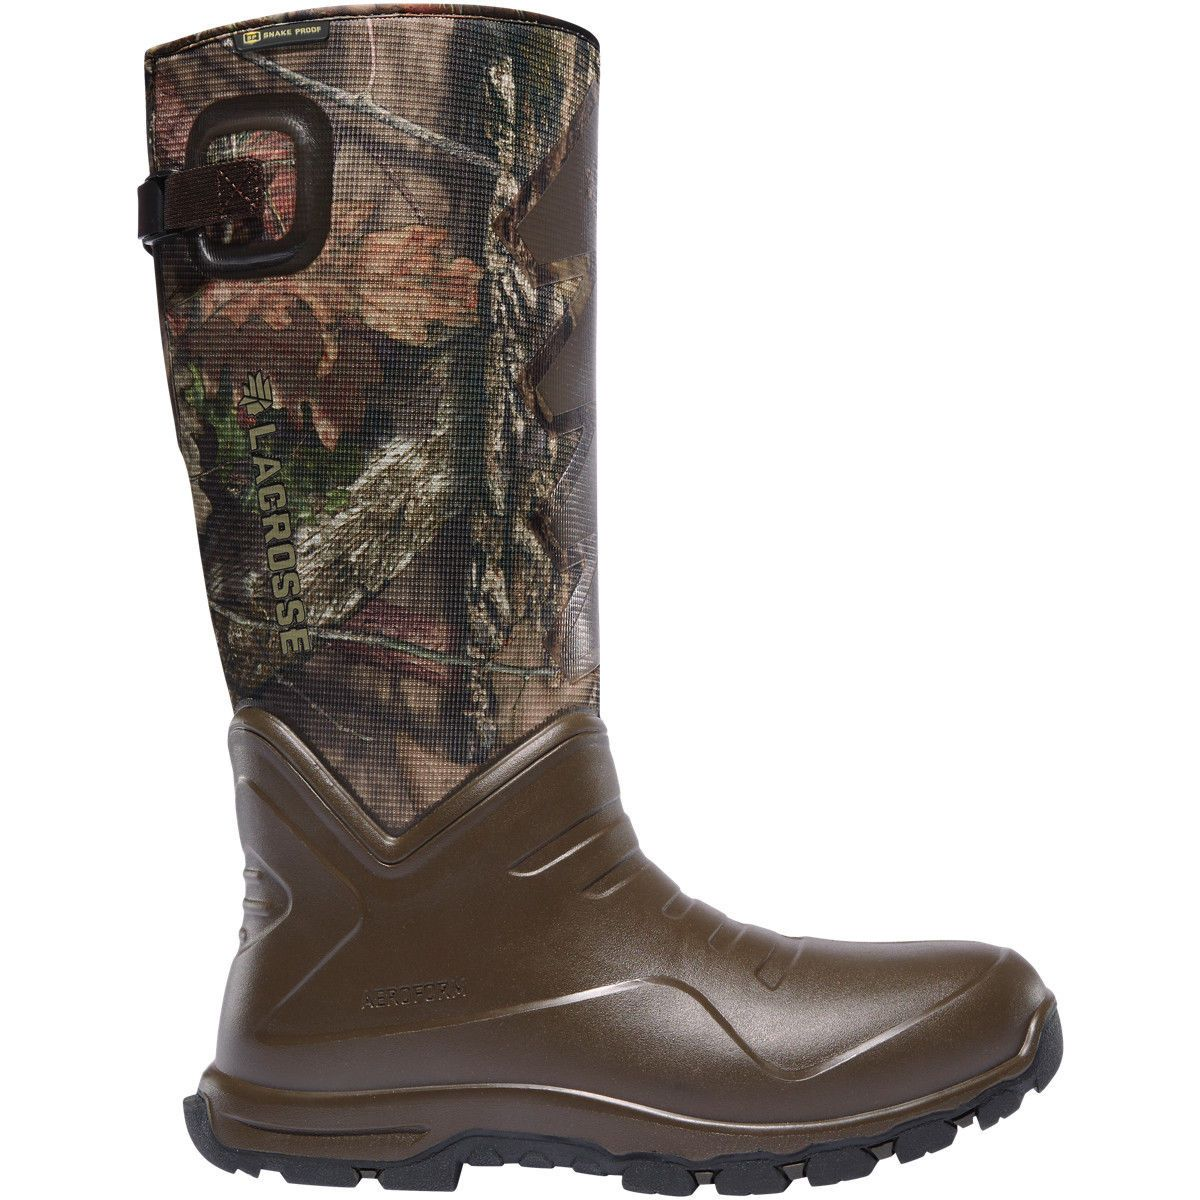 Lacrosse Aerohead Sport Snake Boot With Images Snake Boots Rubber Hunting Boots Boots